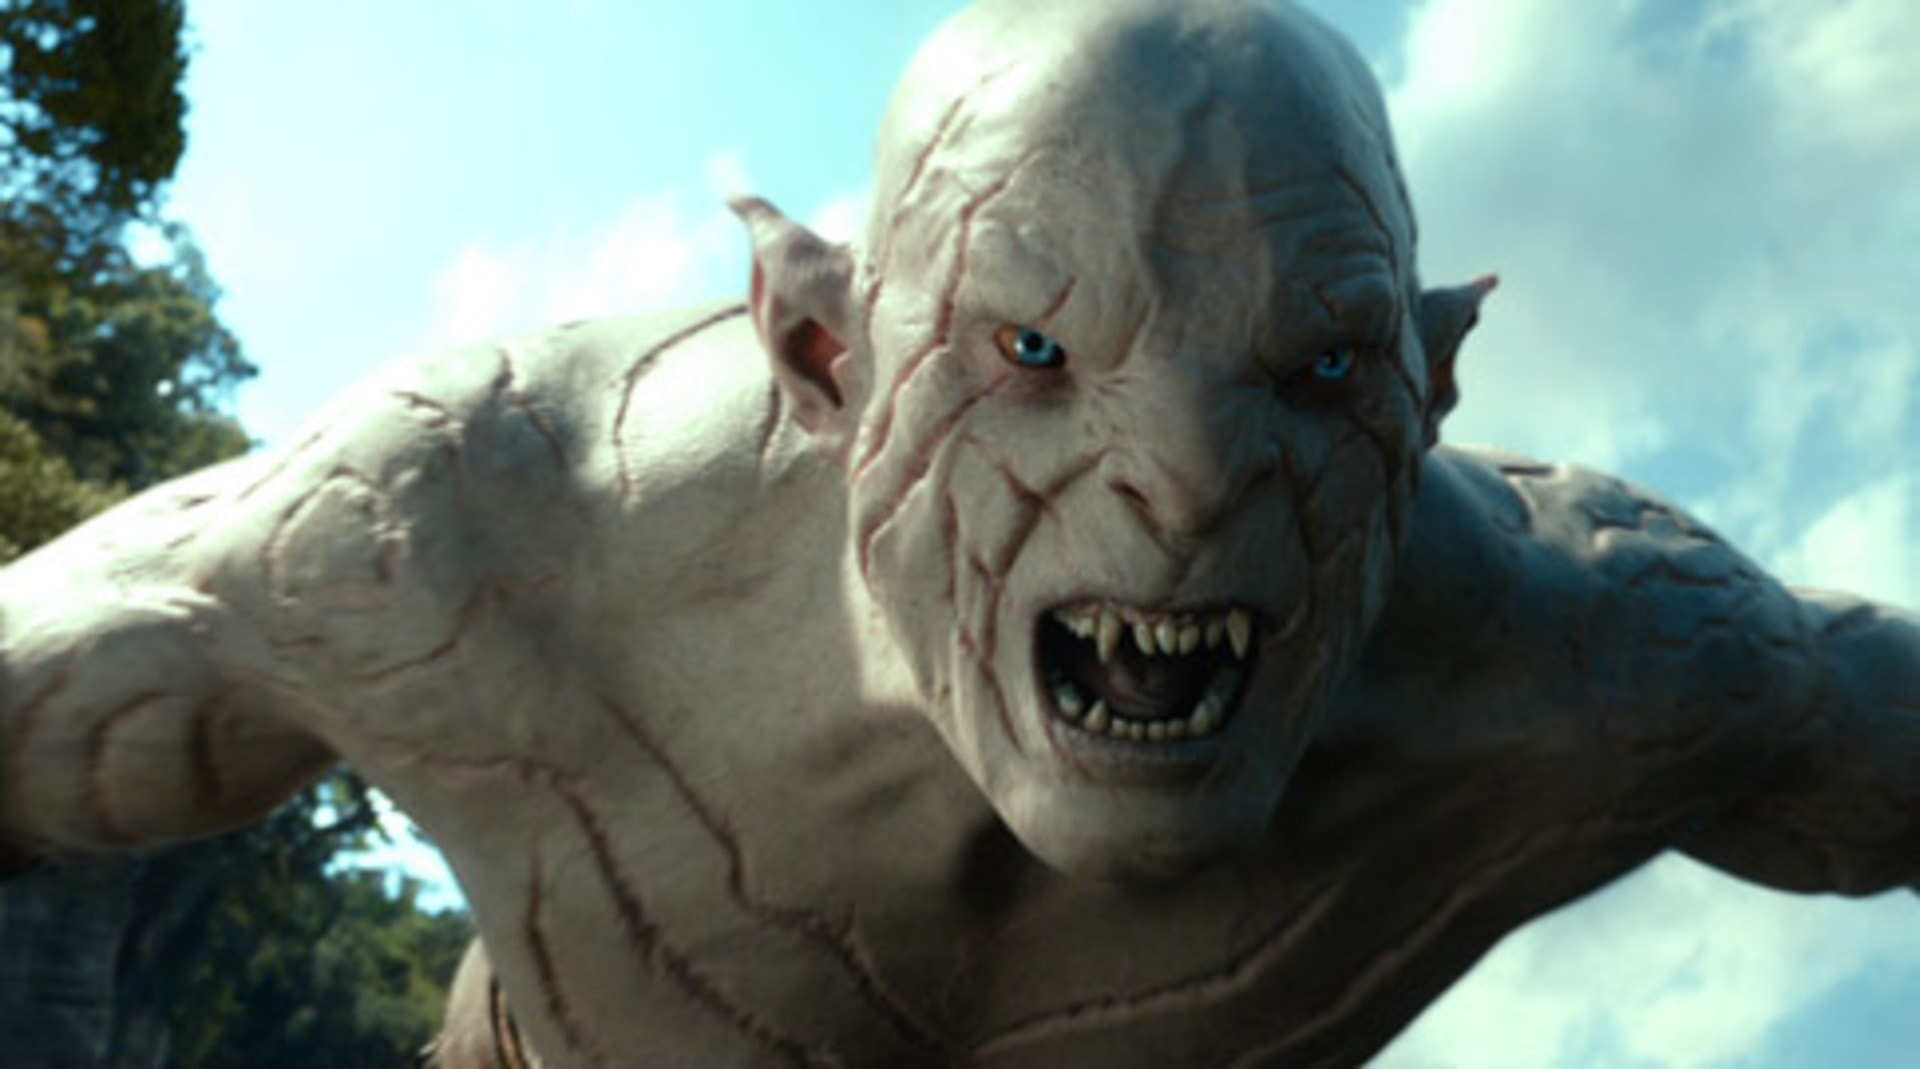 The Hobbit: The Desolation of Smaug - Image 30